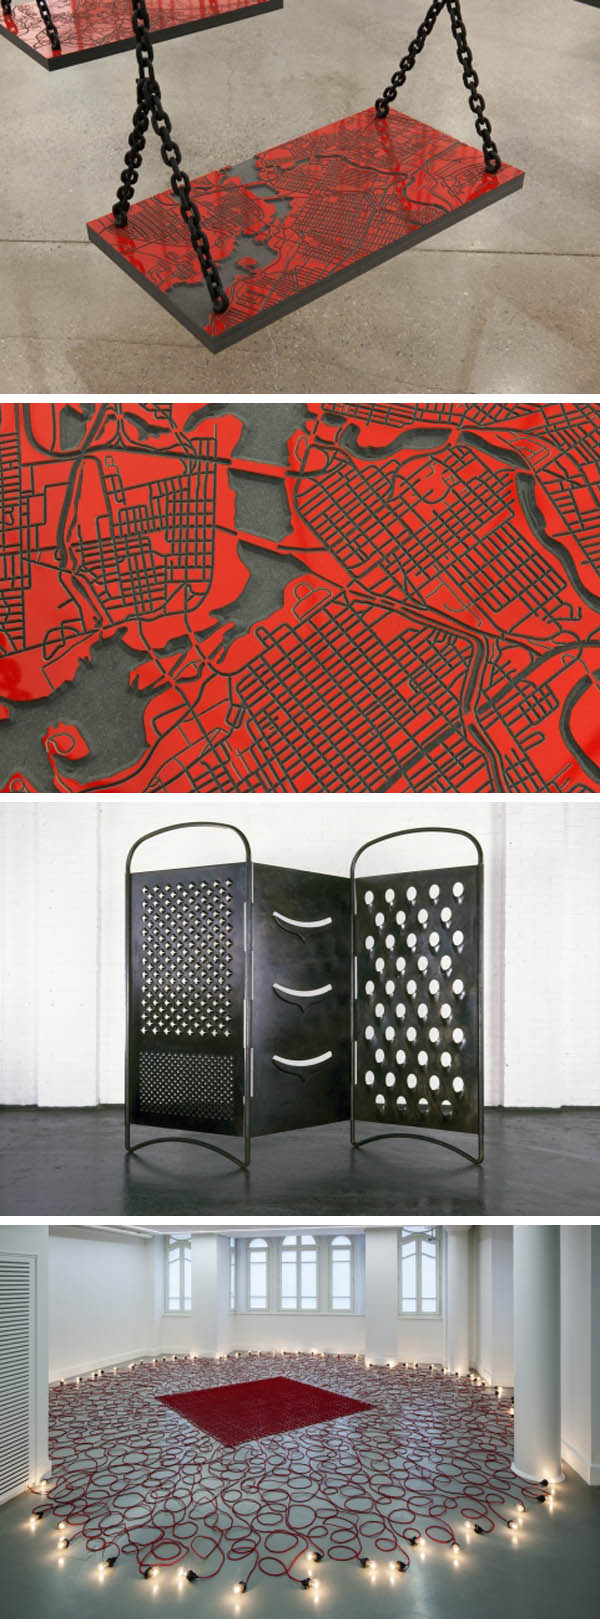 Contemporary Palestinian/Lebanese art, Mona Hatoum, cool installations, swings, maps, cheese grater divider